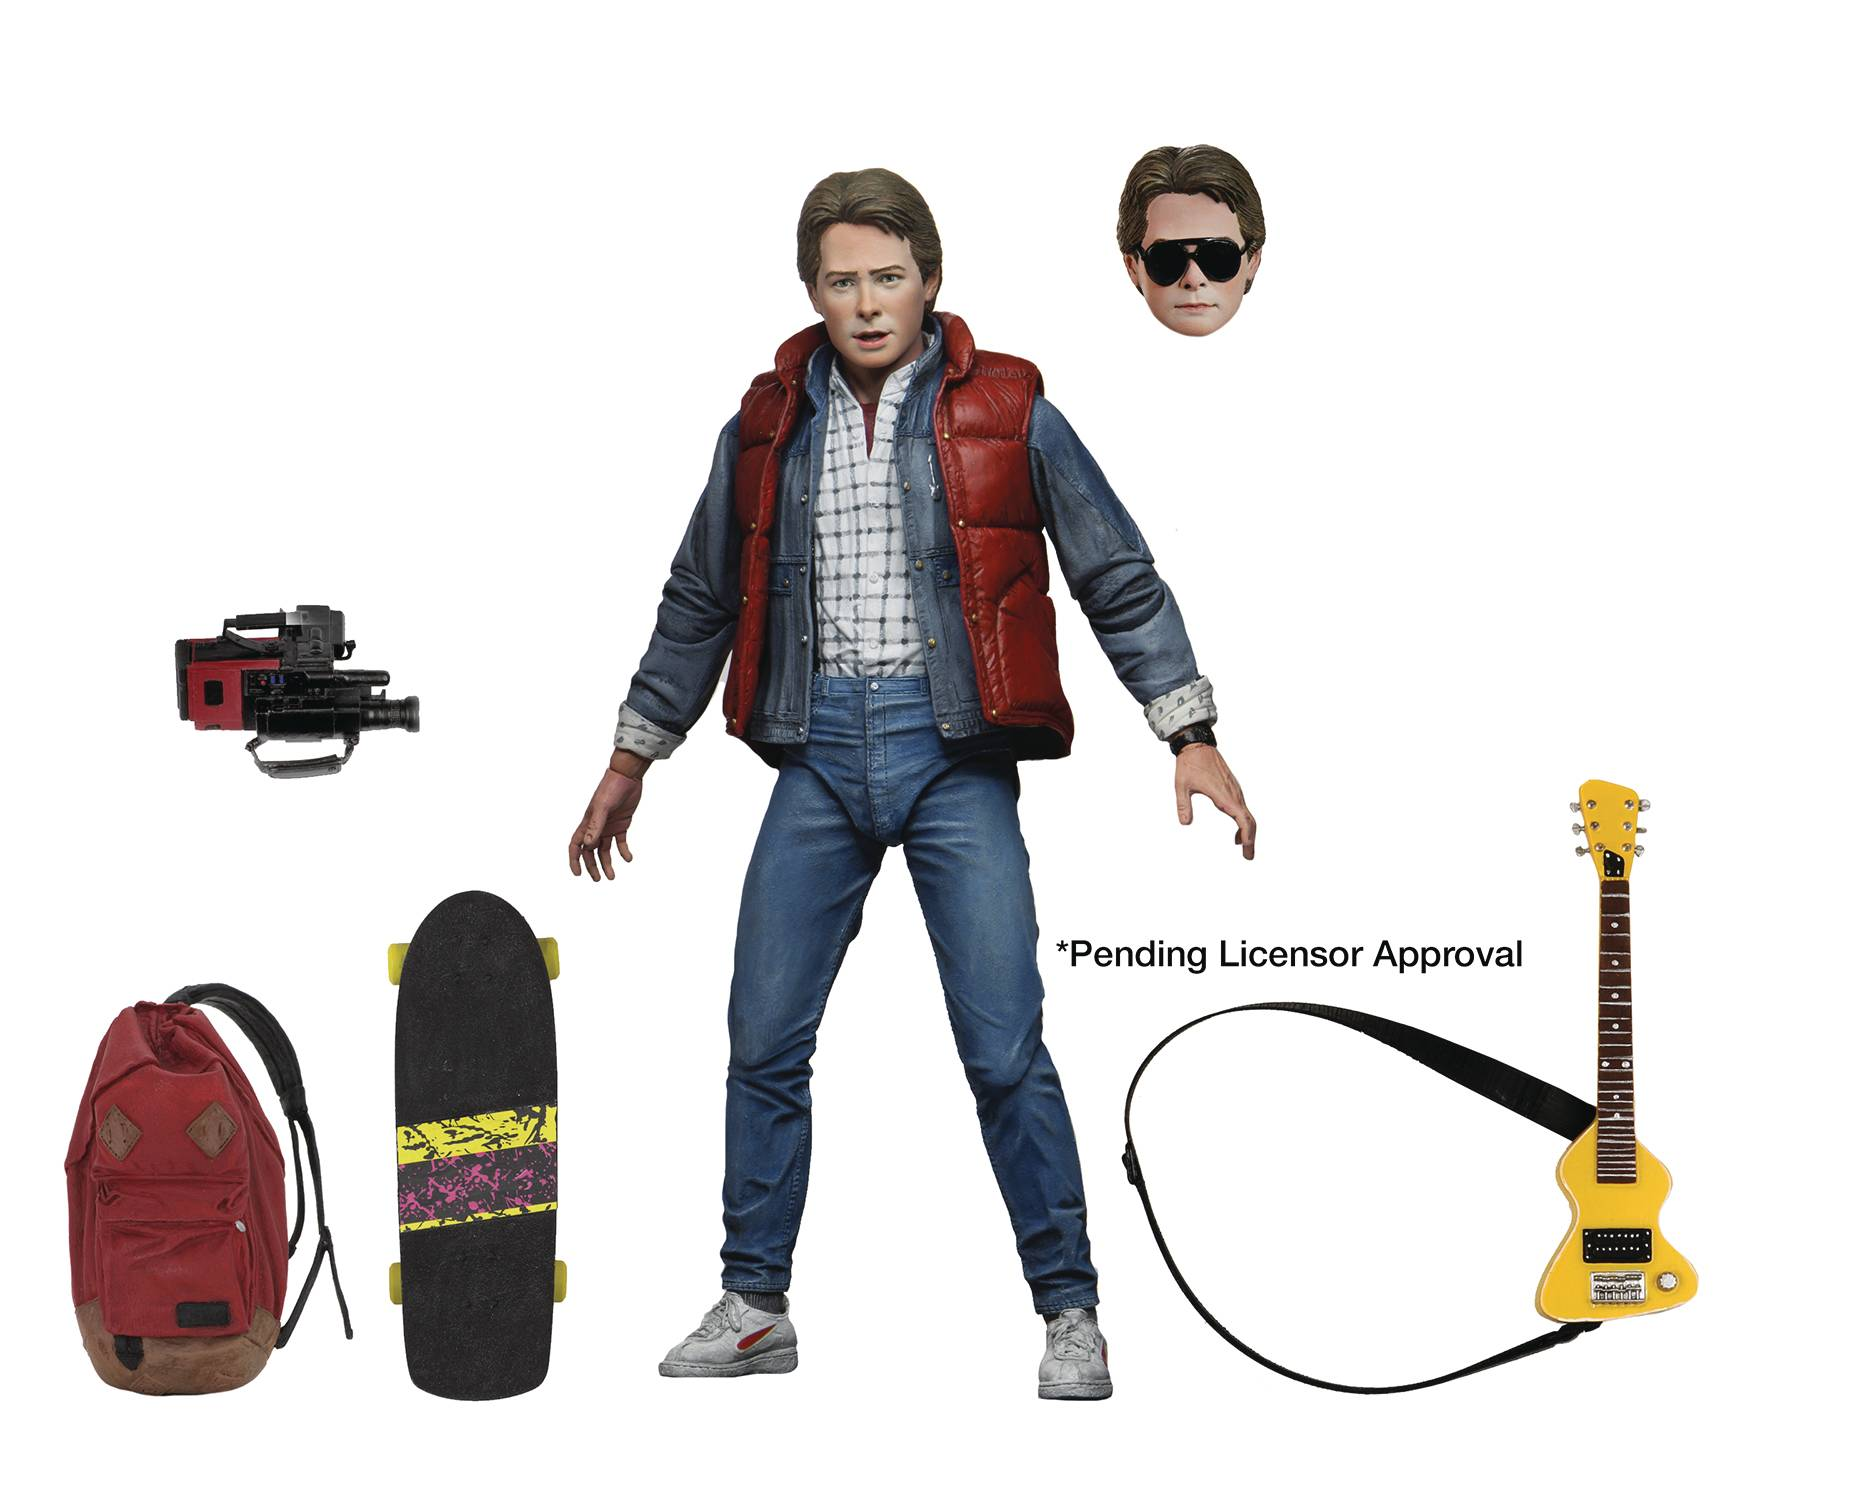 ULTIMATE MARTY MCFLY BACK TO THE FUTURE  - NECA 7 INCH ACTION FIGURE